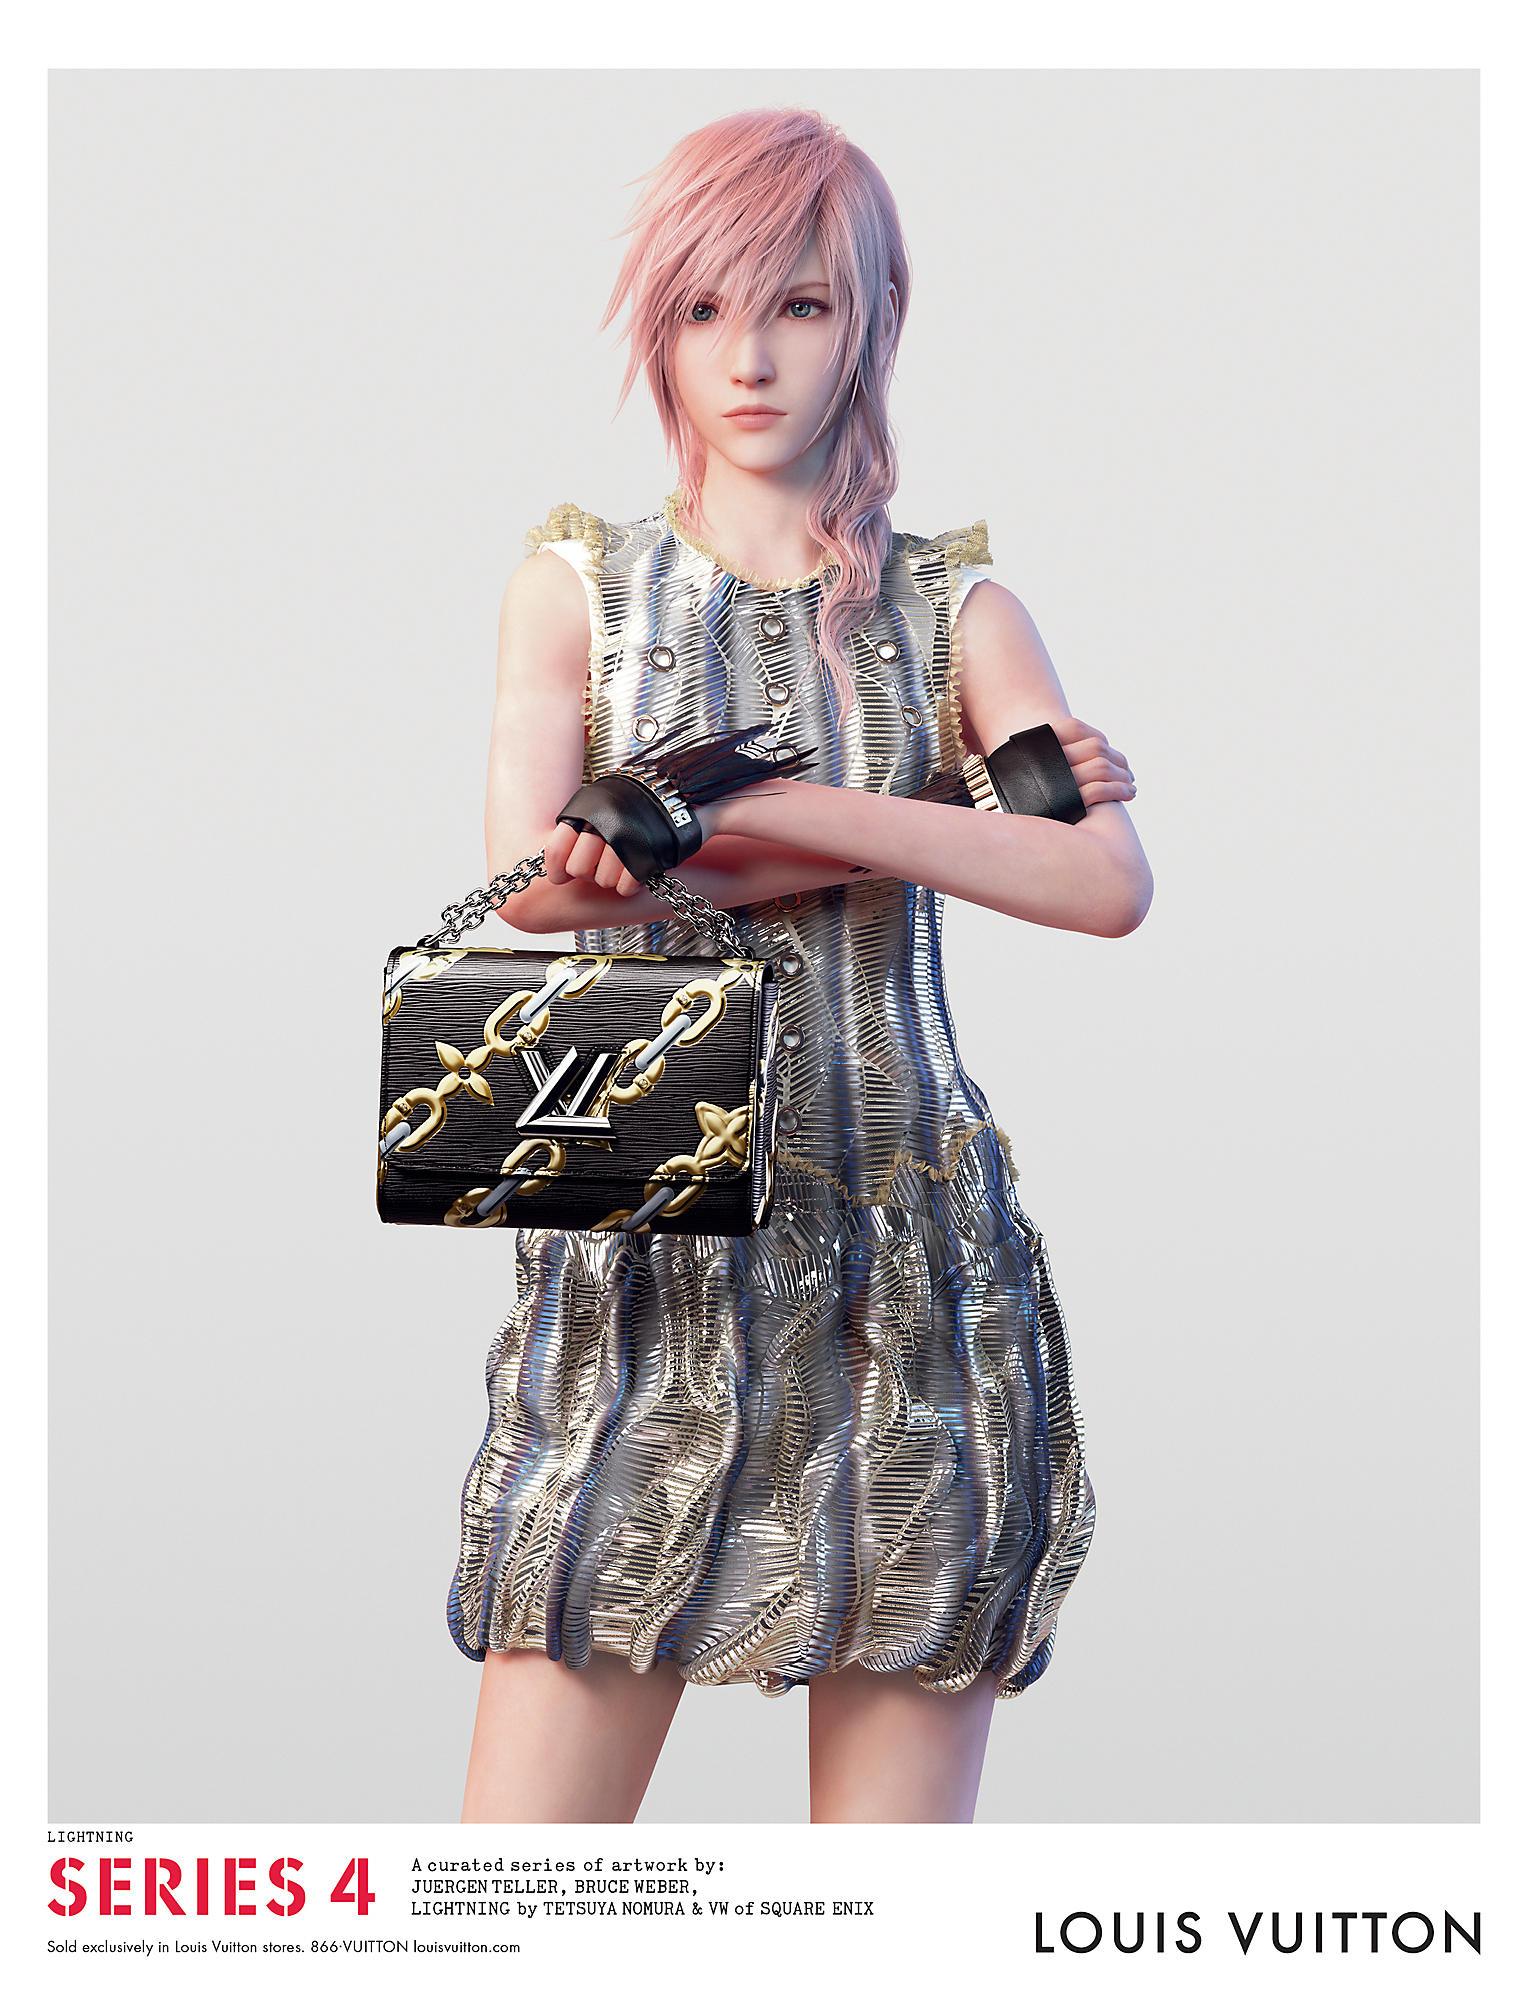 Louis Vuitton Series 4 + Final Fantasy XIII